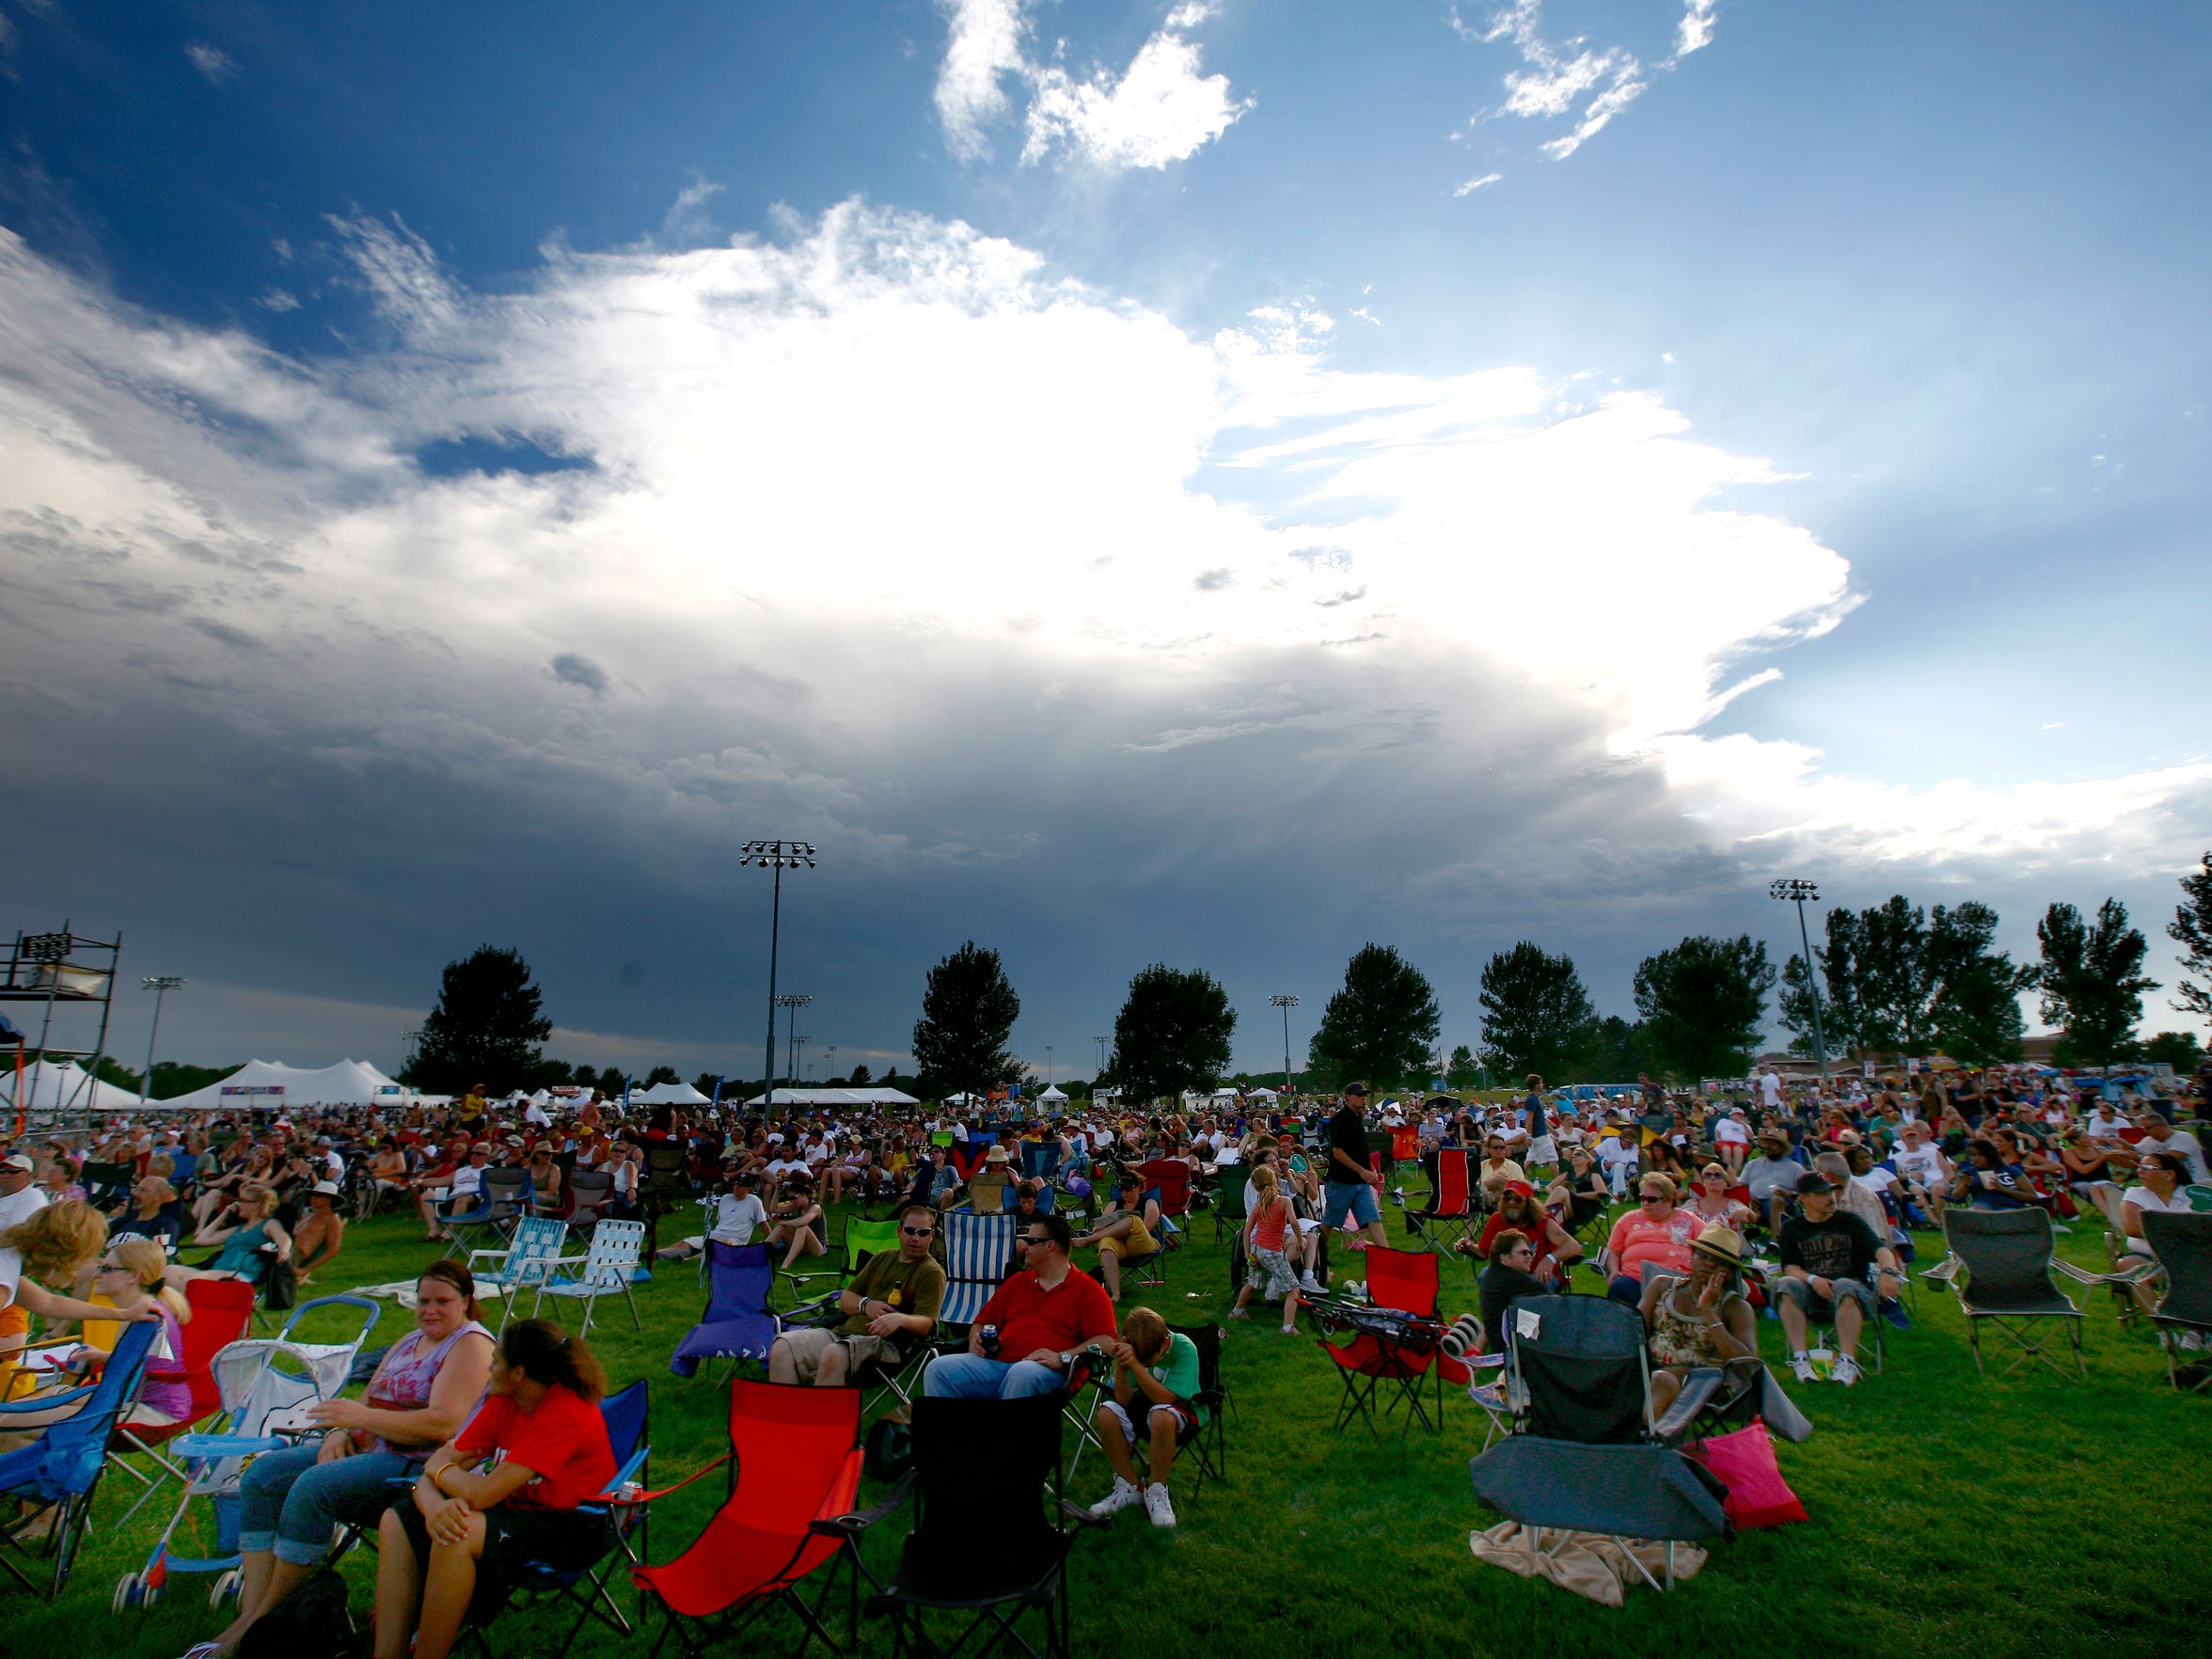 Storm clouds loom on the horizon as JazzFest fans sit on the grass at Yankton Trail Park.